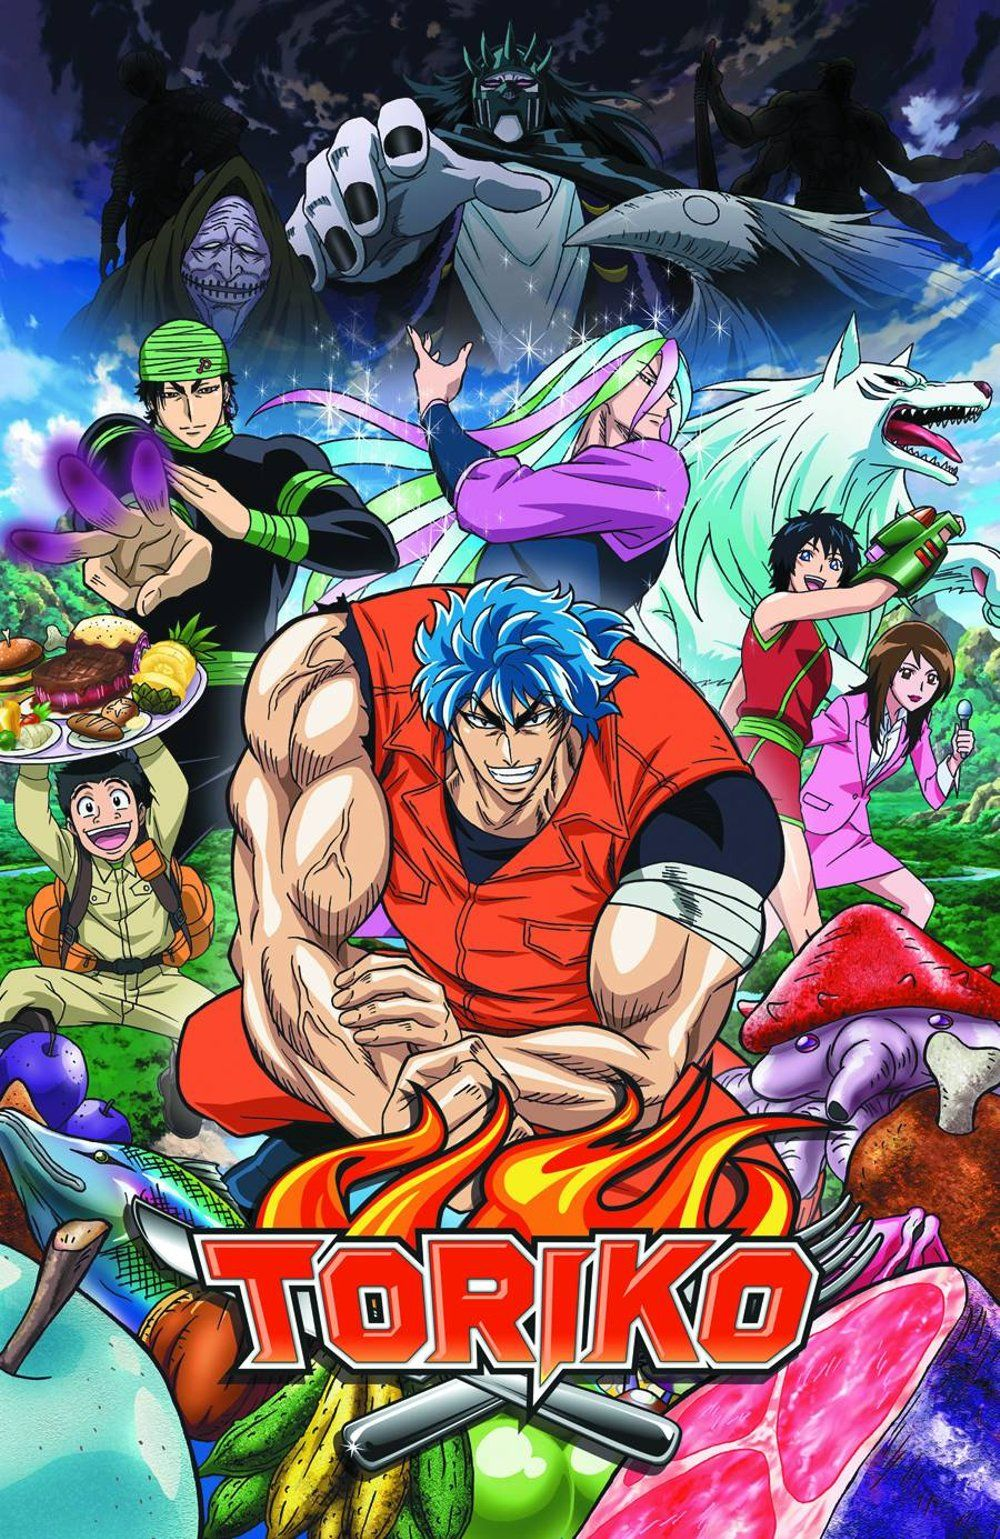 The post Toriko 001 147 appeared first on Erairaws